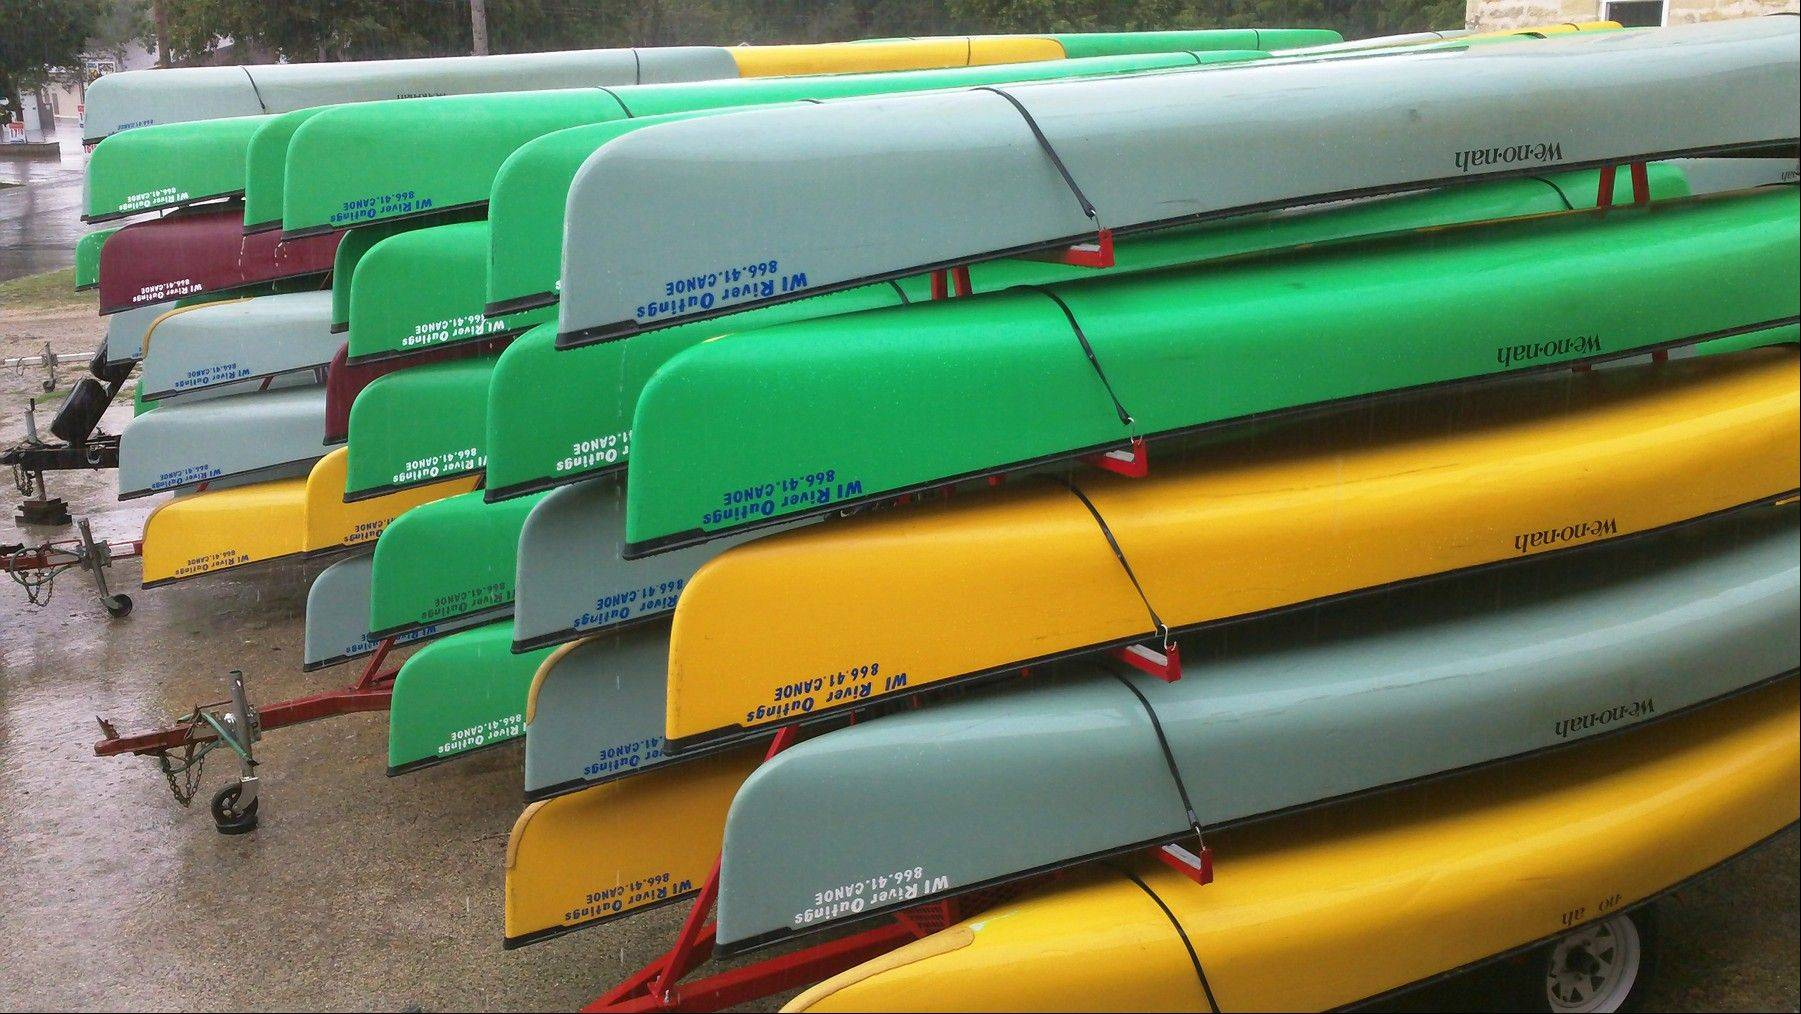 Trailers loaded with rental canoes and kayaks will be providing boat-less paddlers with convenient access to the Fox River for the Mid-American Canoe & Kayak Race on Sunday, June 2. Preregistration ends at noon Wednesday, May 29.